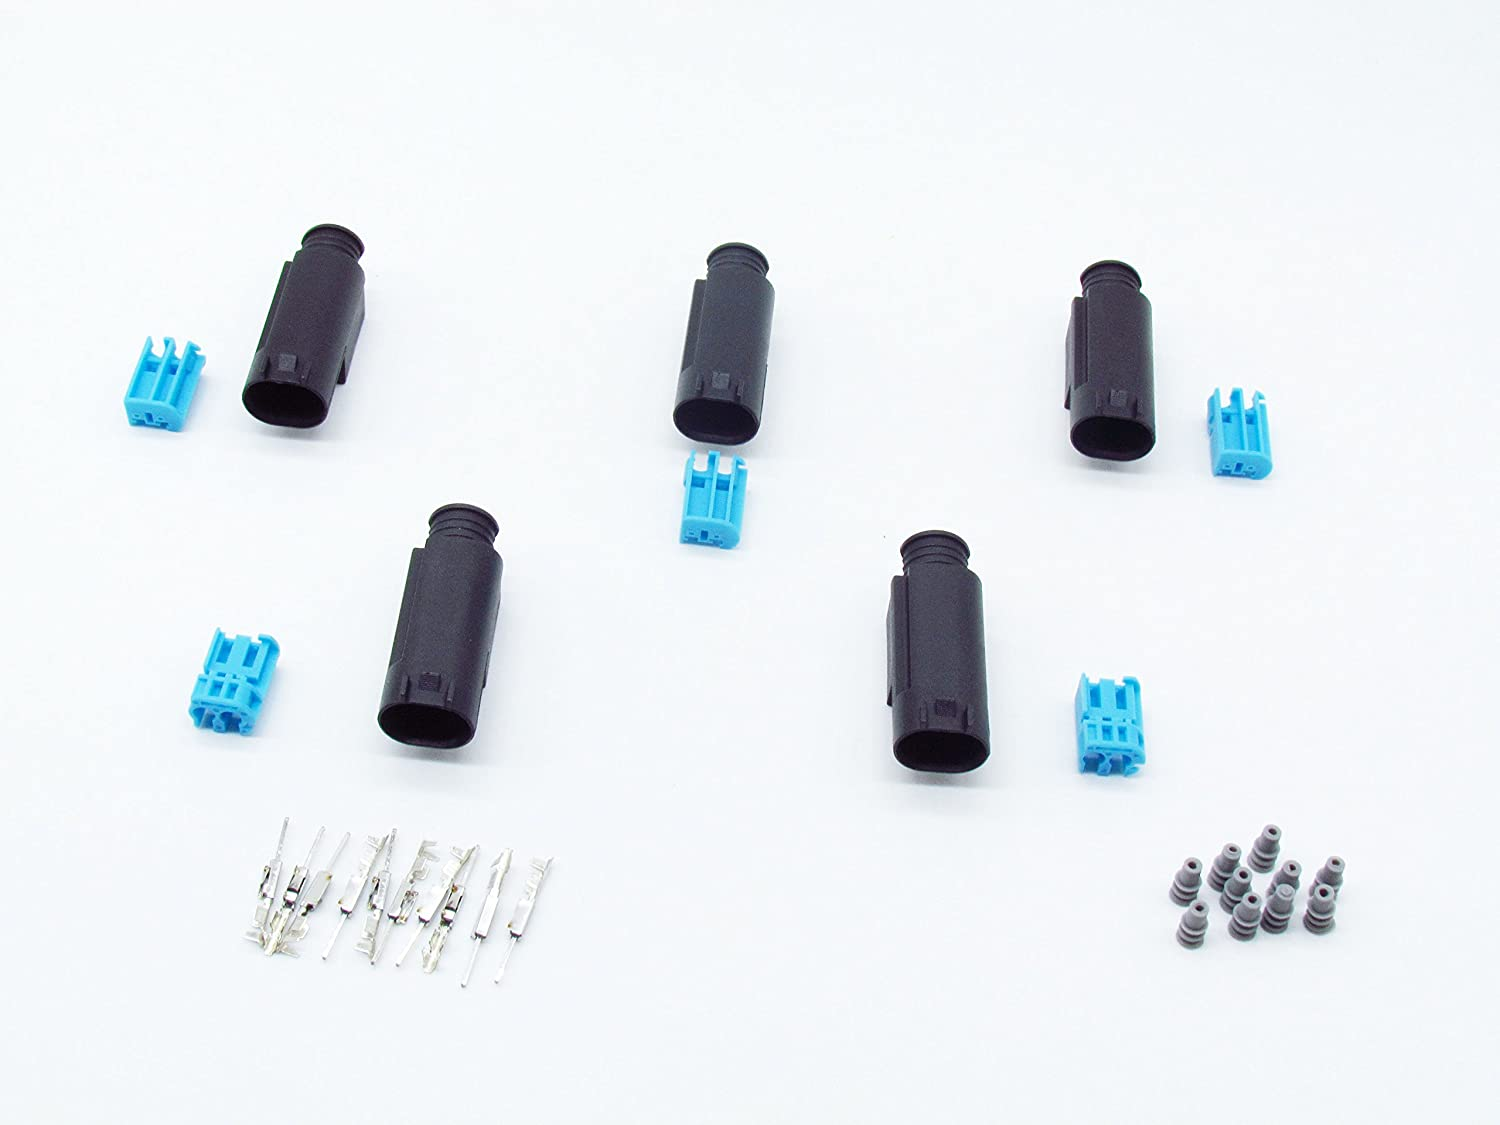 CNKF 5 Sets AMP//Tyco//TE 2 pins male black waterproof connector for BWM Porsche benz 7-967570-3